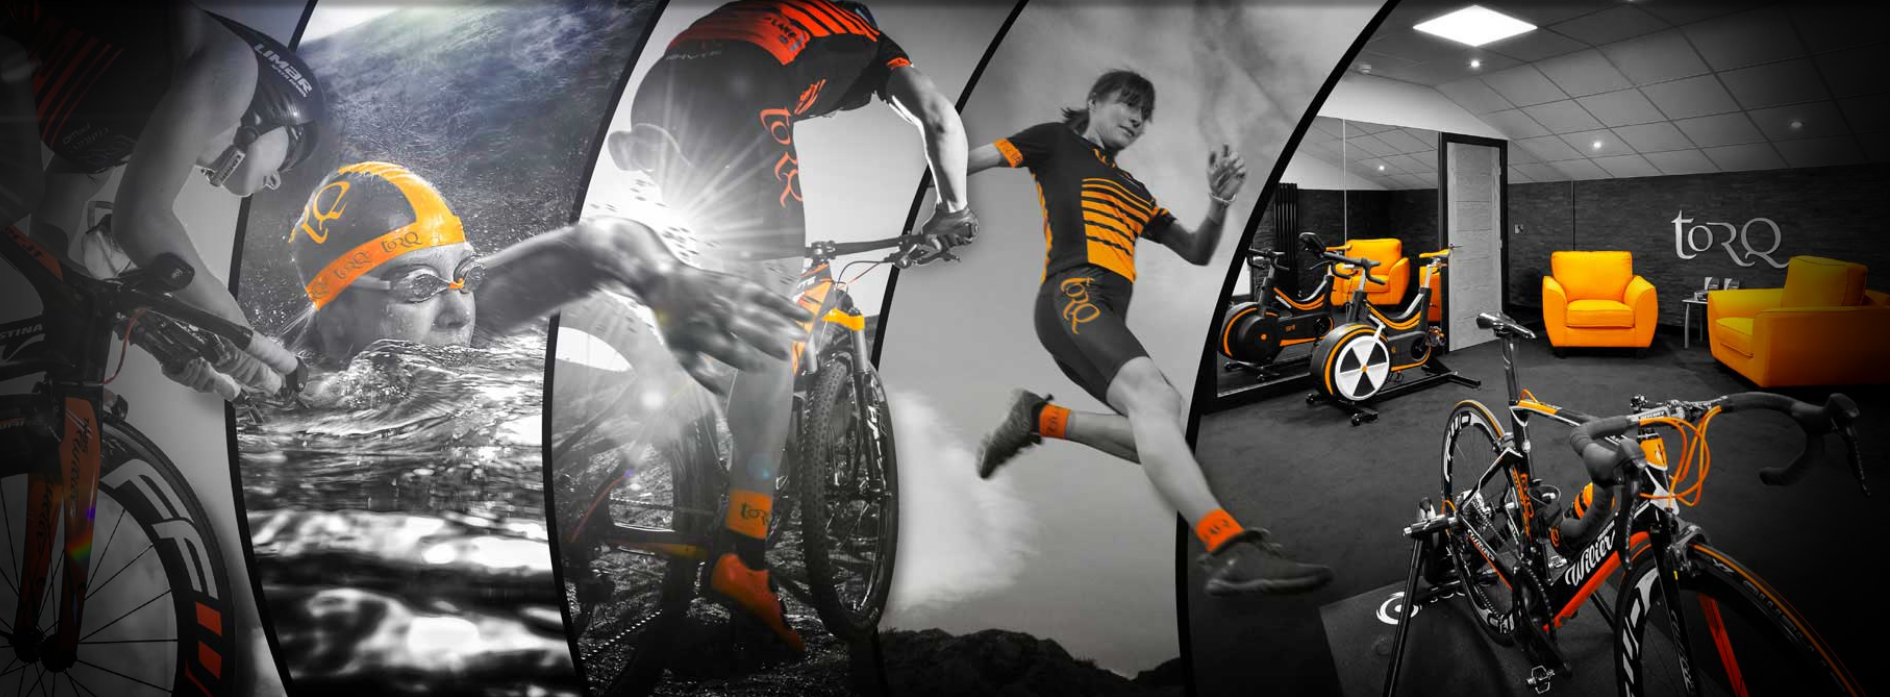 TORQ Performance Gear